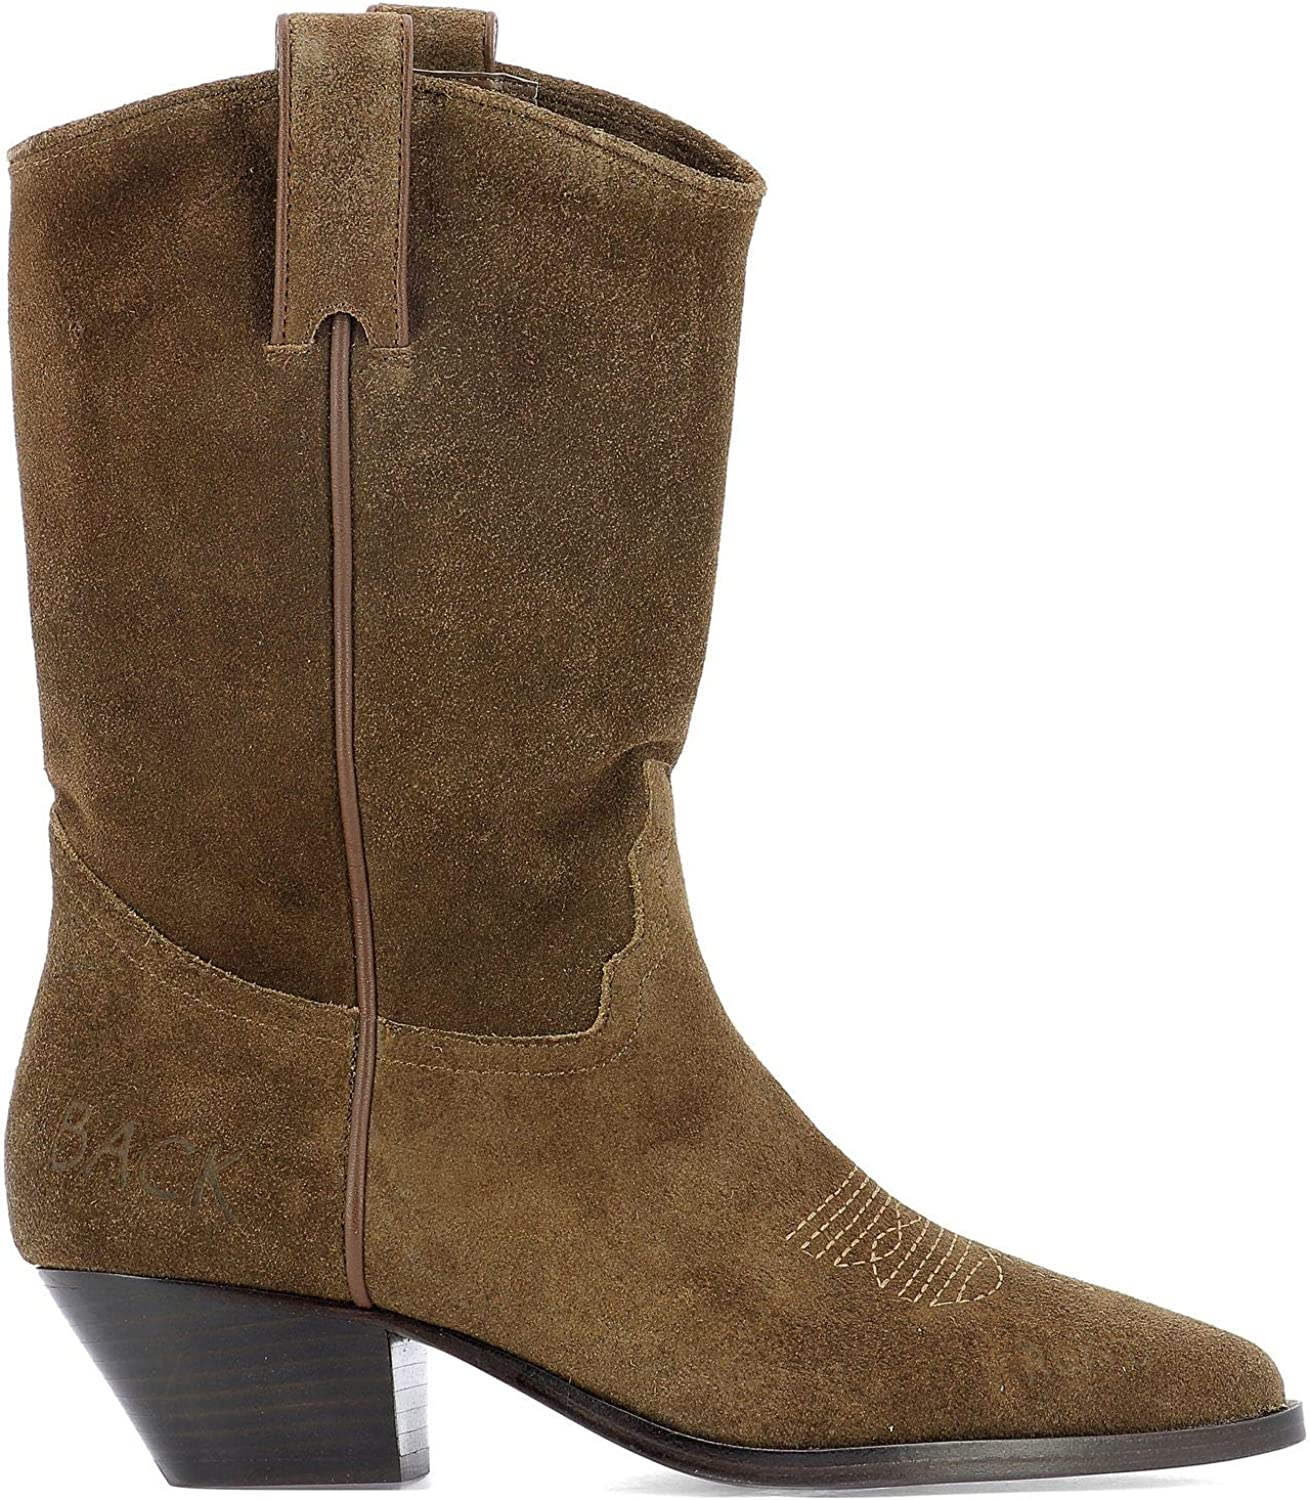 Ash Women's FIRE04 Brown Suede Ankle Boots